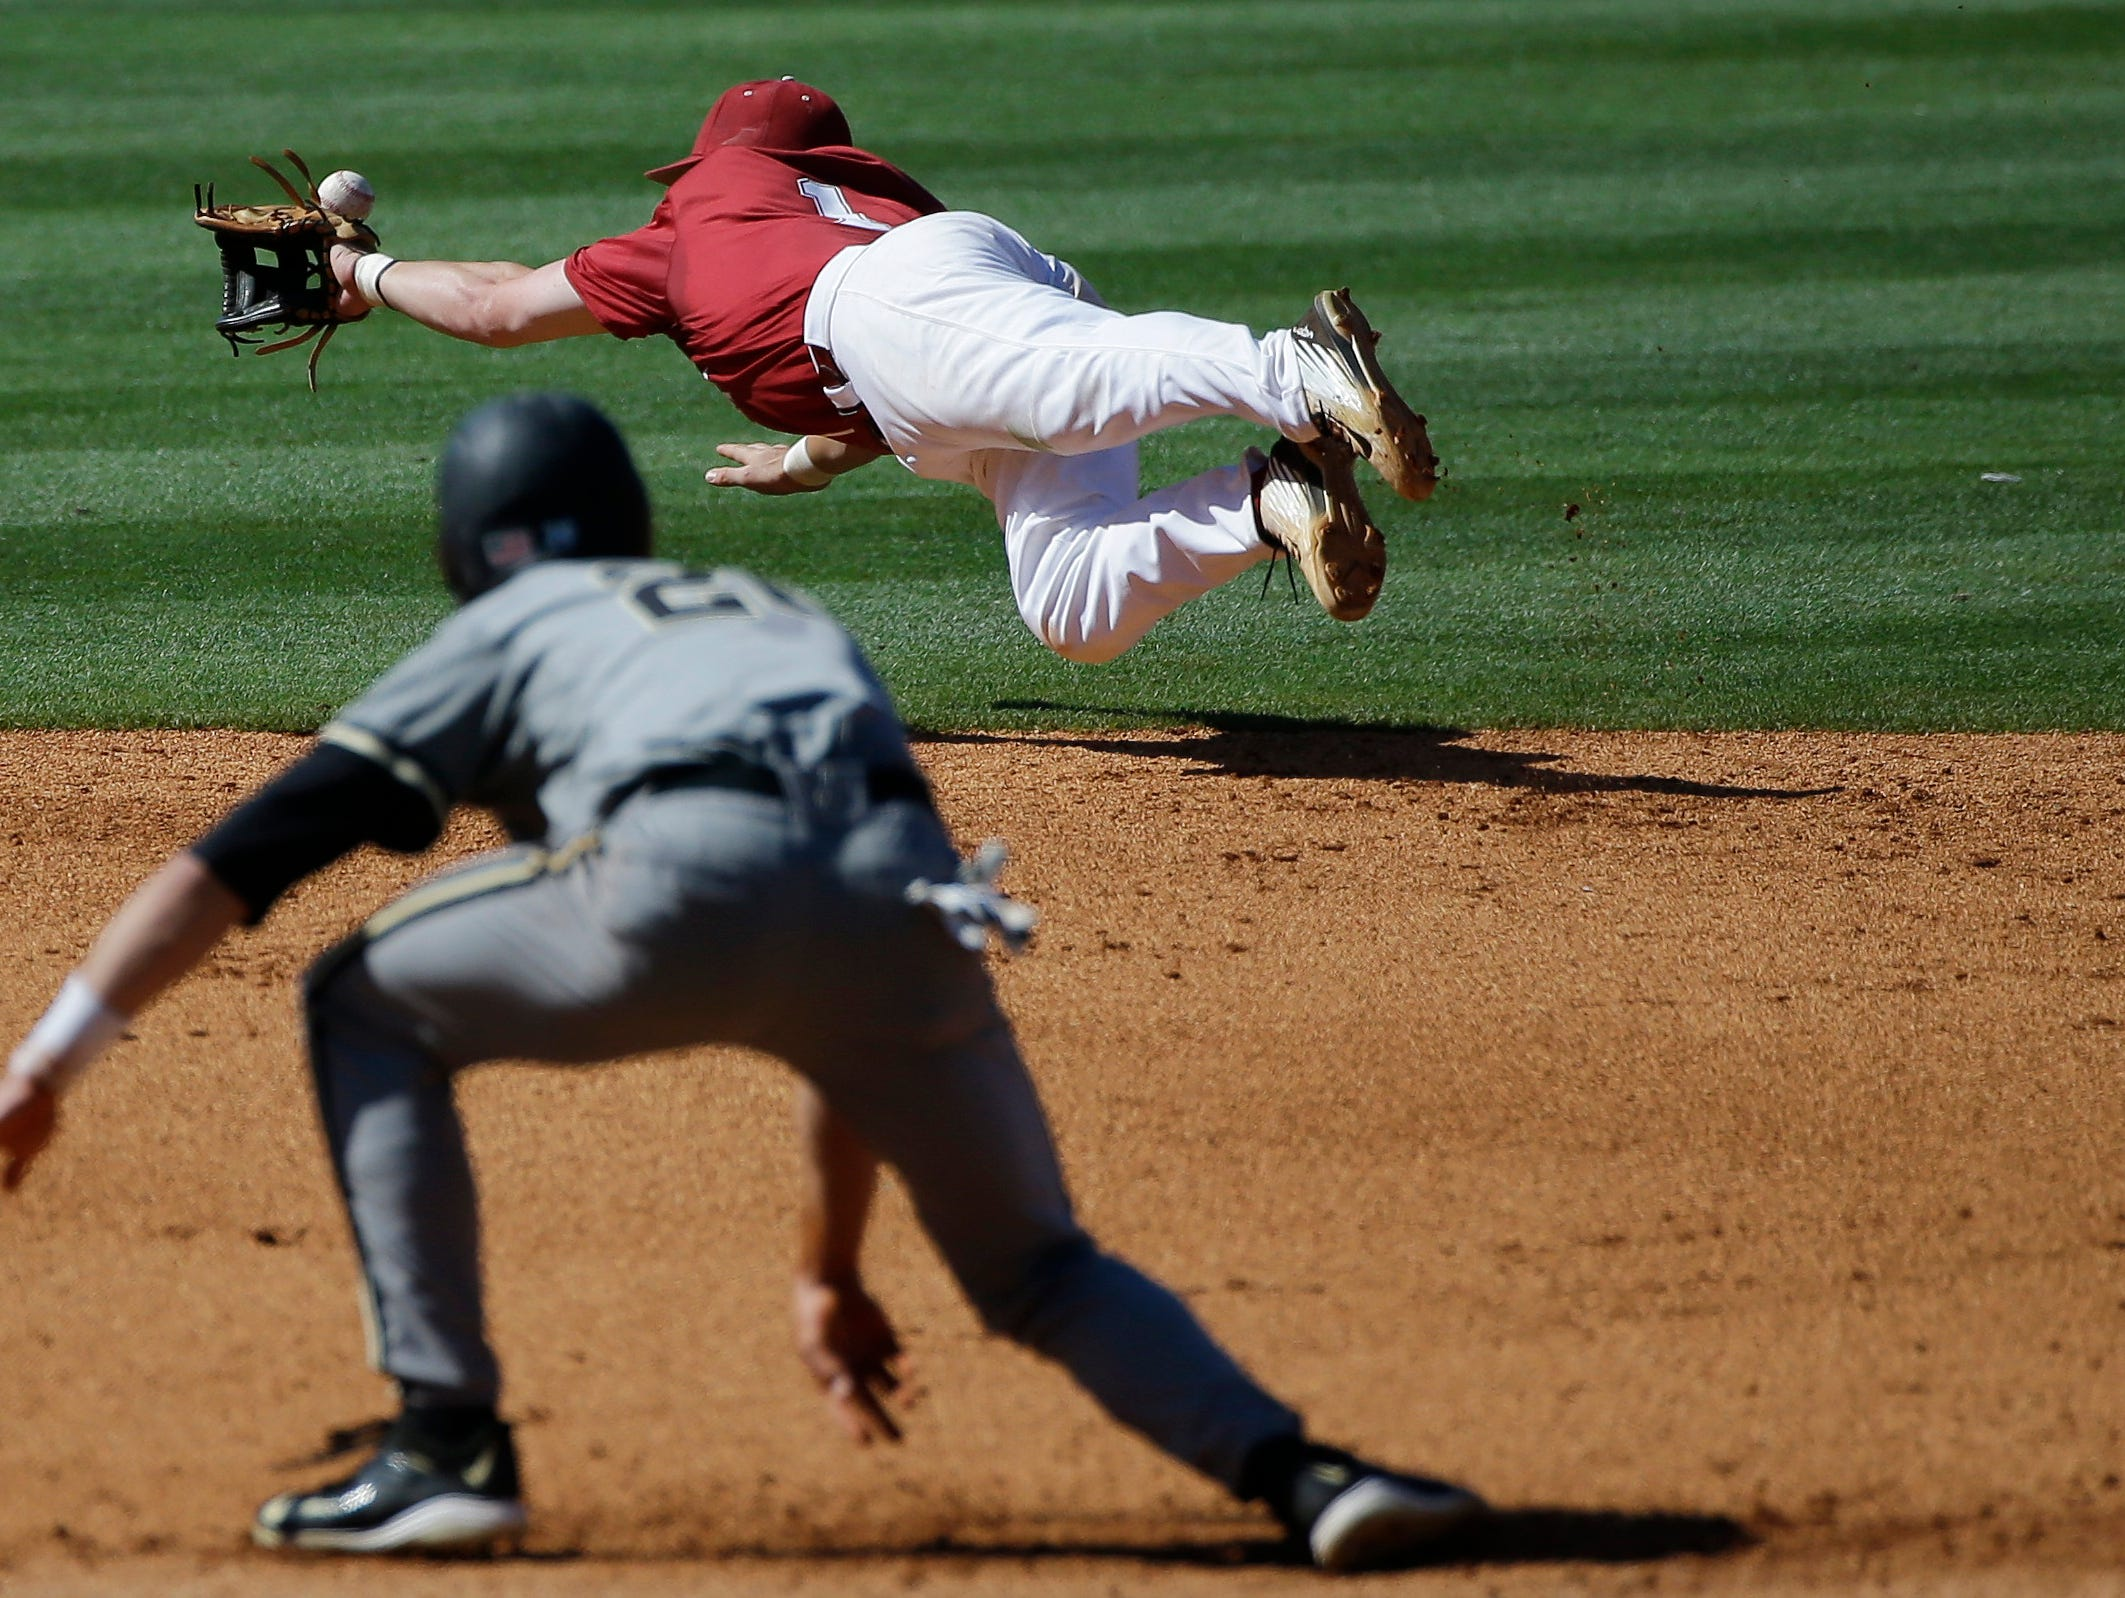 Alabama's Mikey White, top, dives for the ball and but misses it as Vanderbilt Bryan Reynolds rounds second base headed for third during the fourth inning of a Southeastern Conference Tournament game Friday in Hoover.